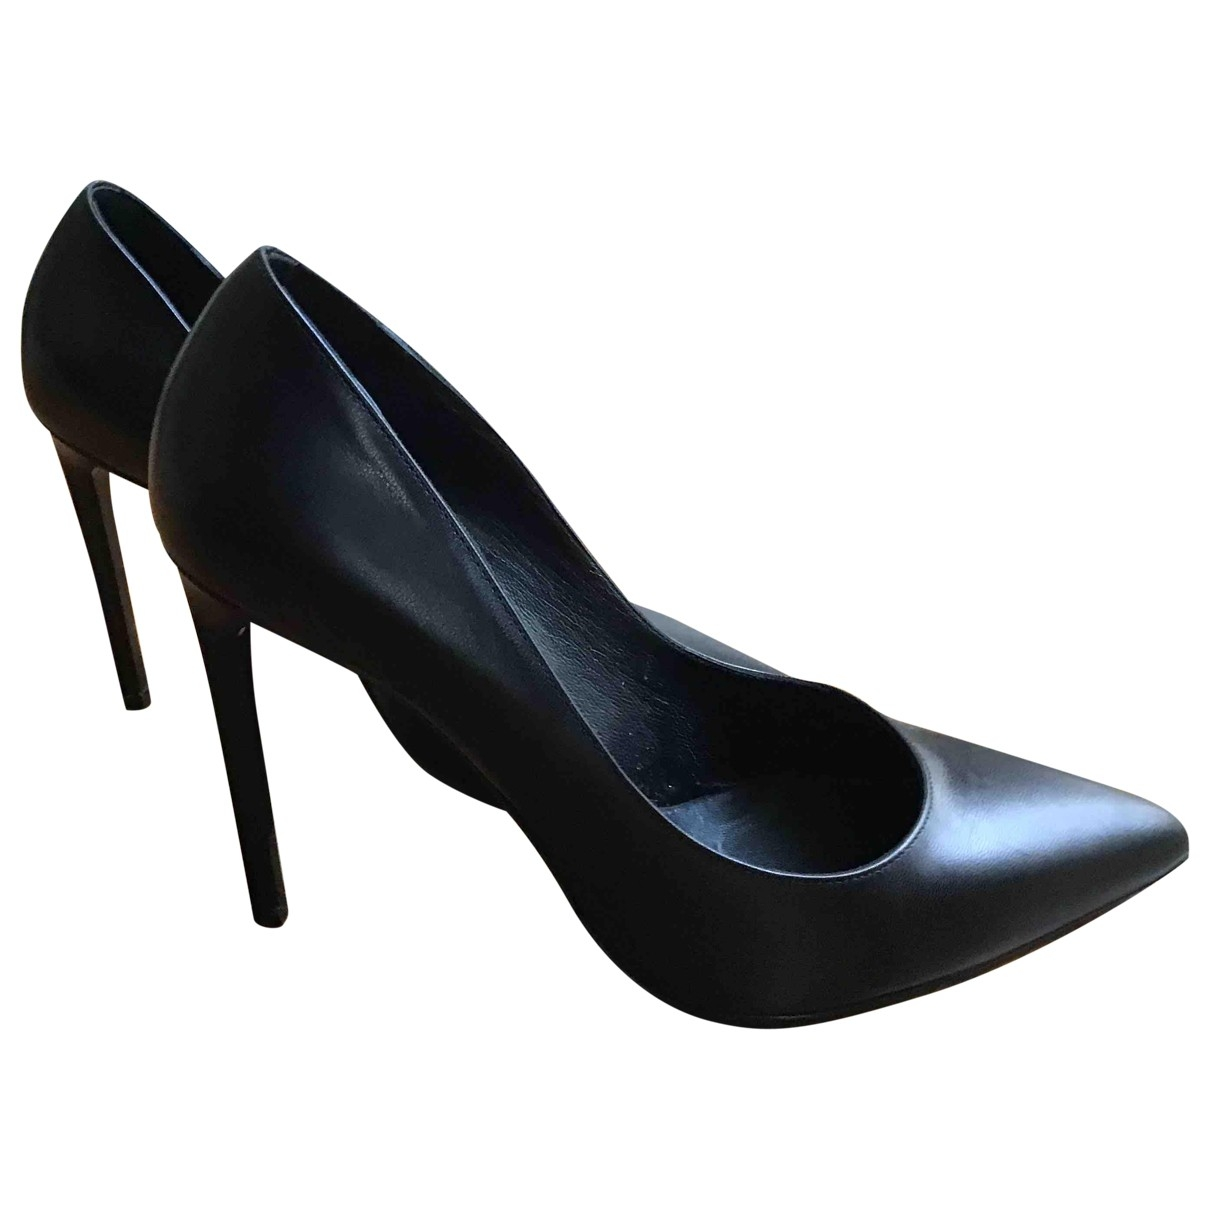 Saint Laurent Anja Black Leather Heels for Women 38 EU